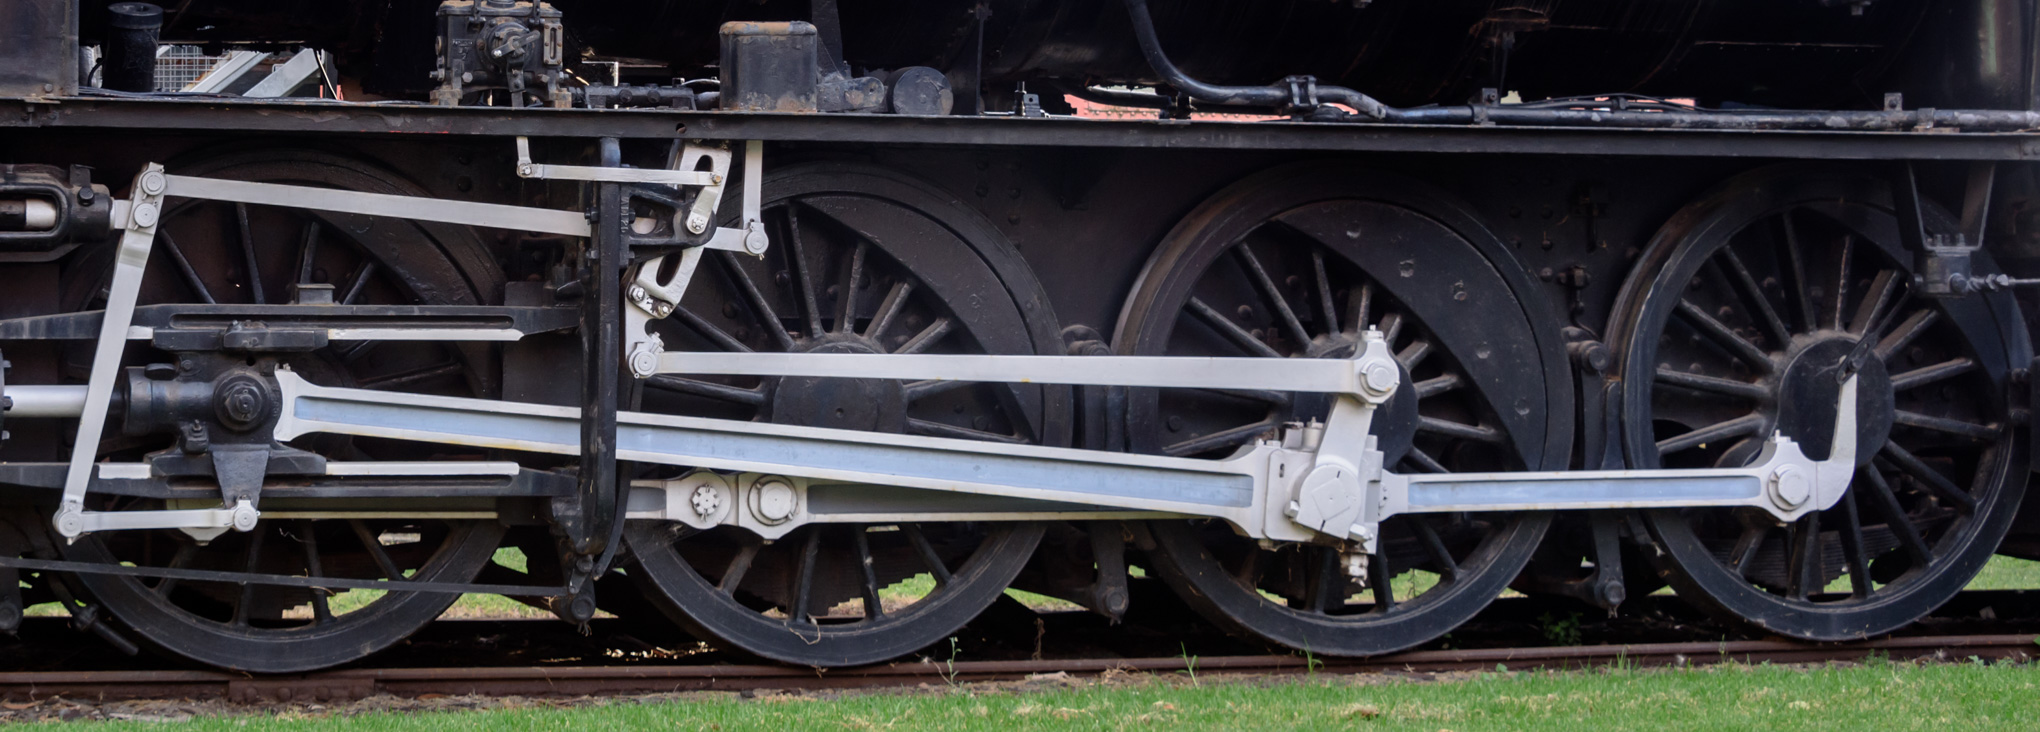 Locomotive wheels and mechanical gear